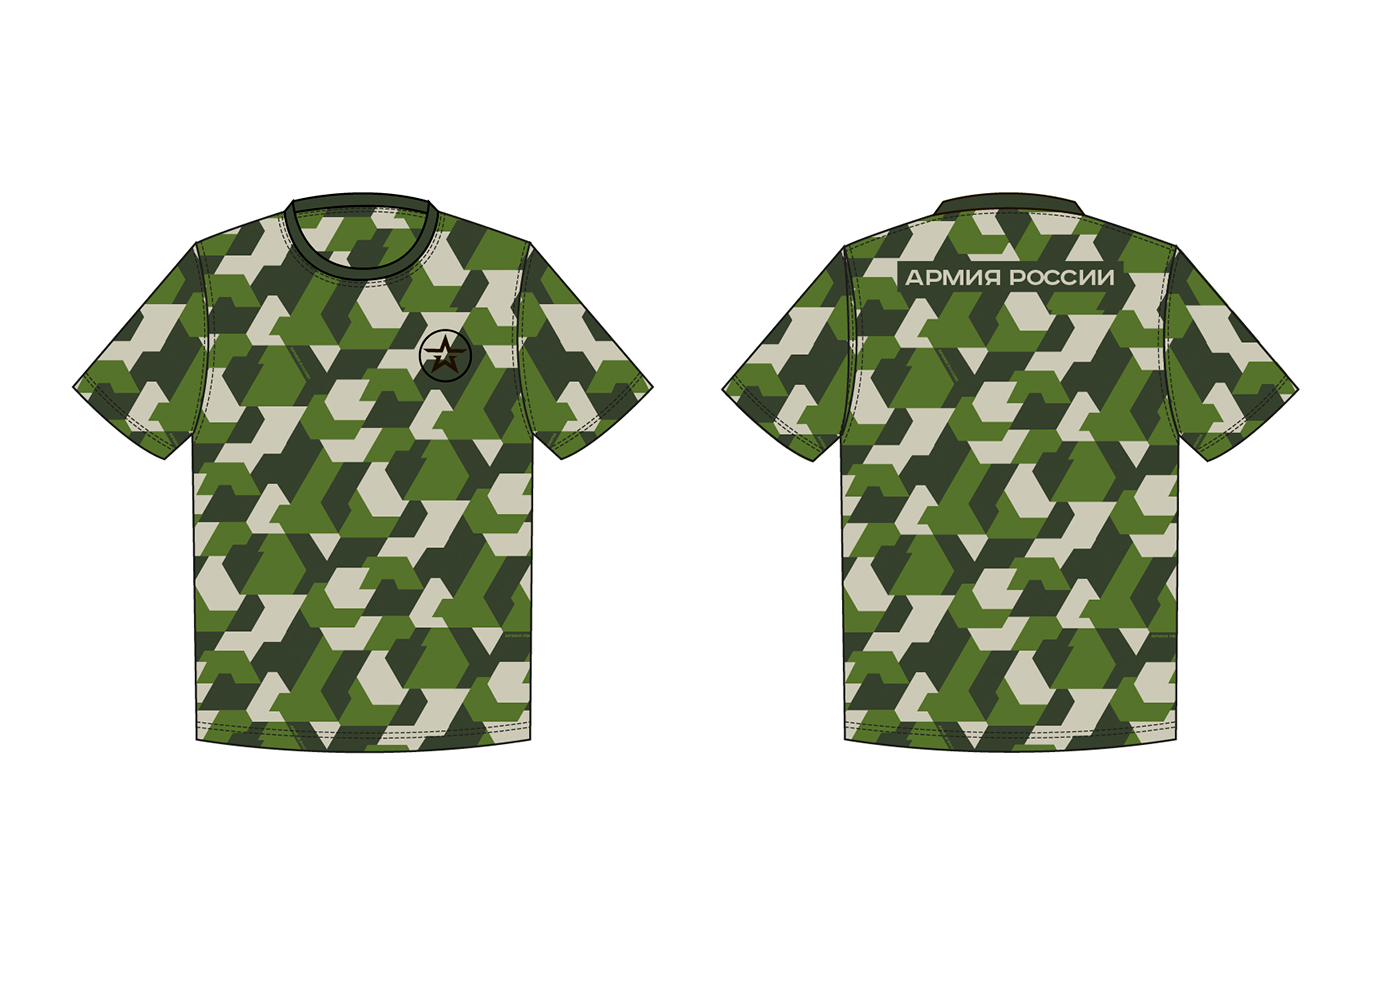 Urban Сamouflage for line clothes RUSSIAN ARMY on Behance ab035e7cc